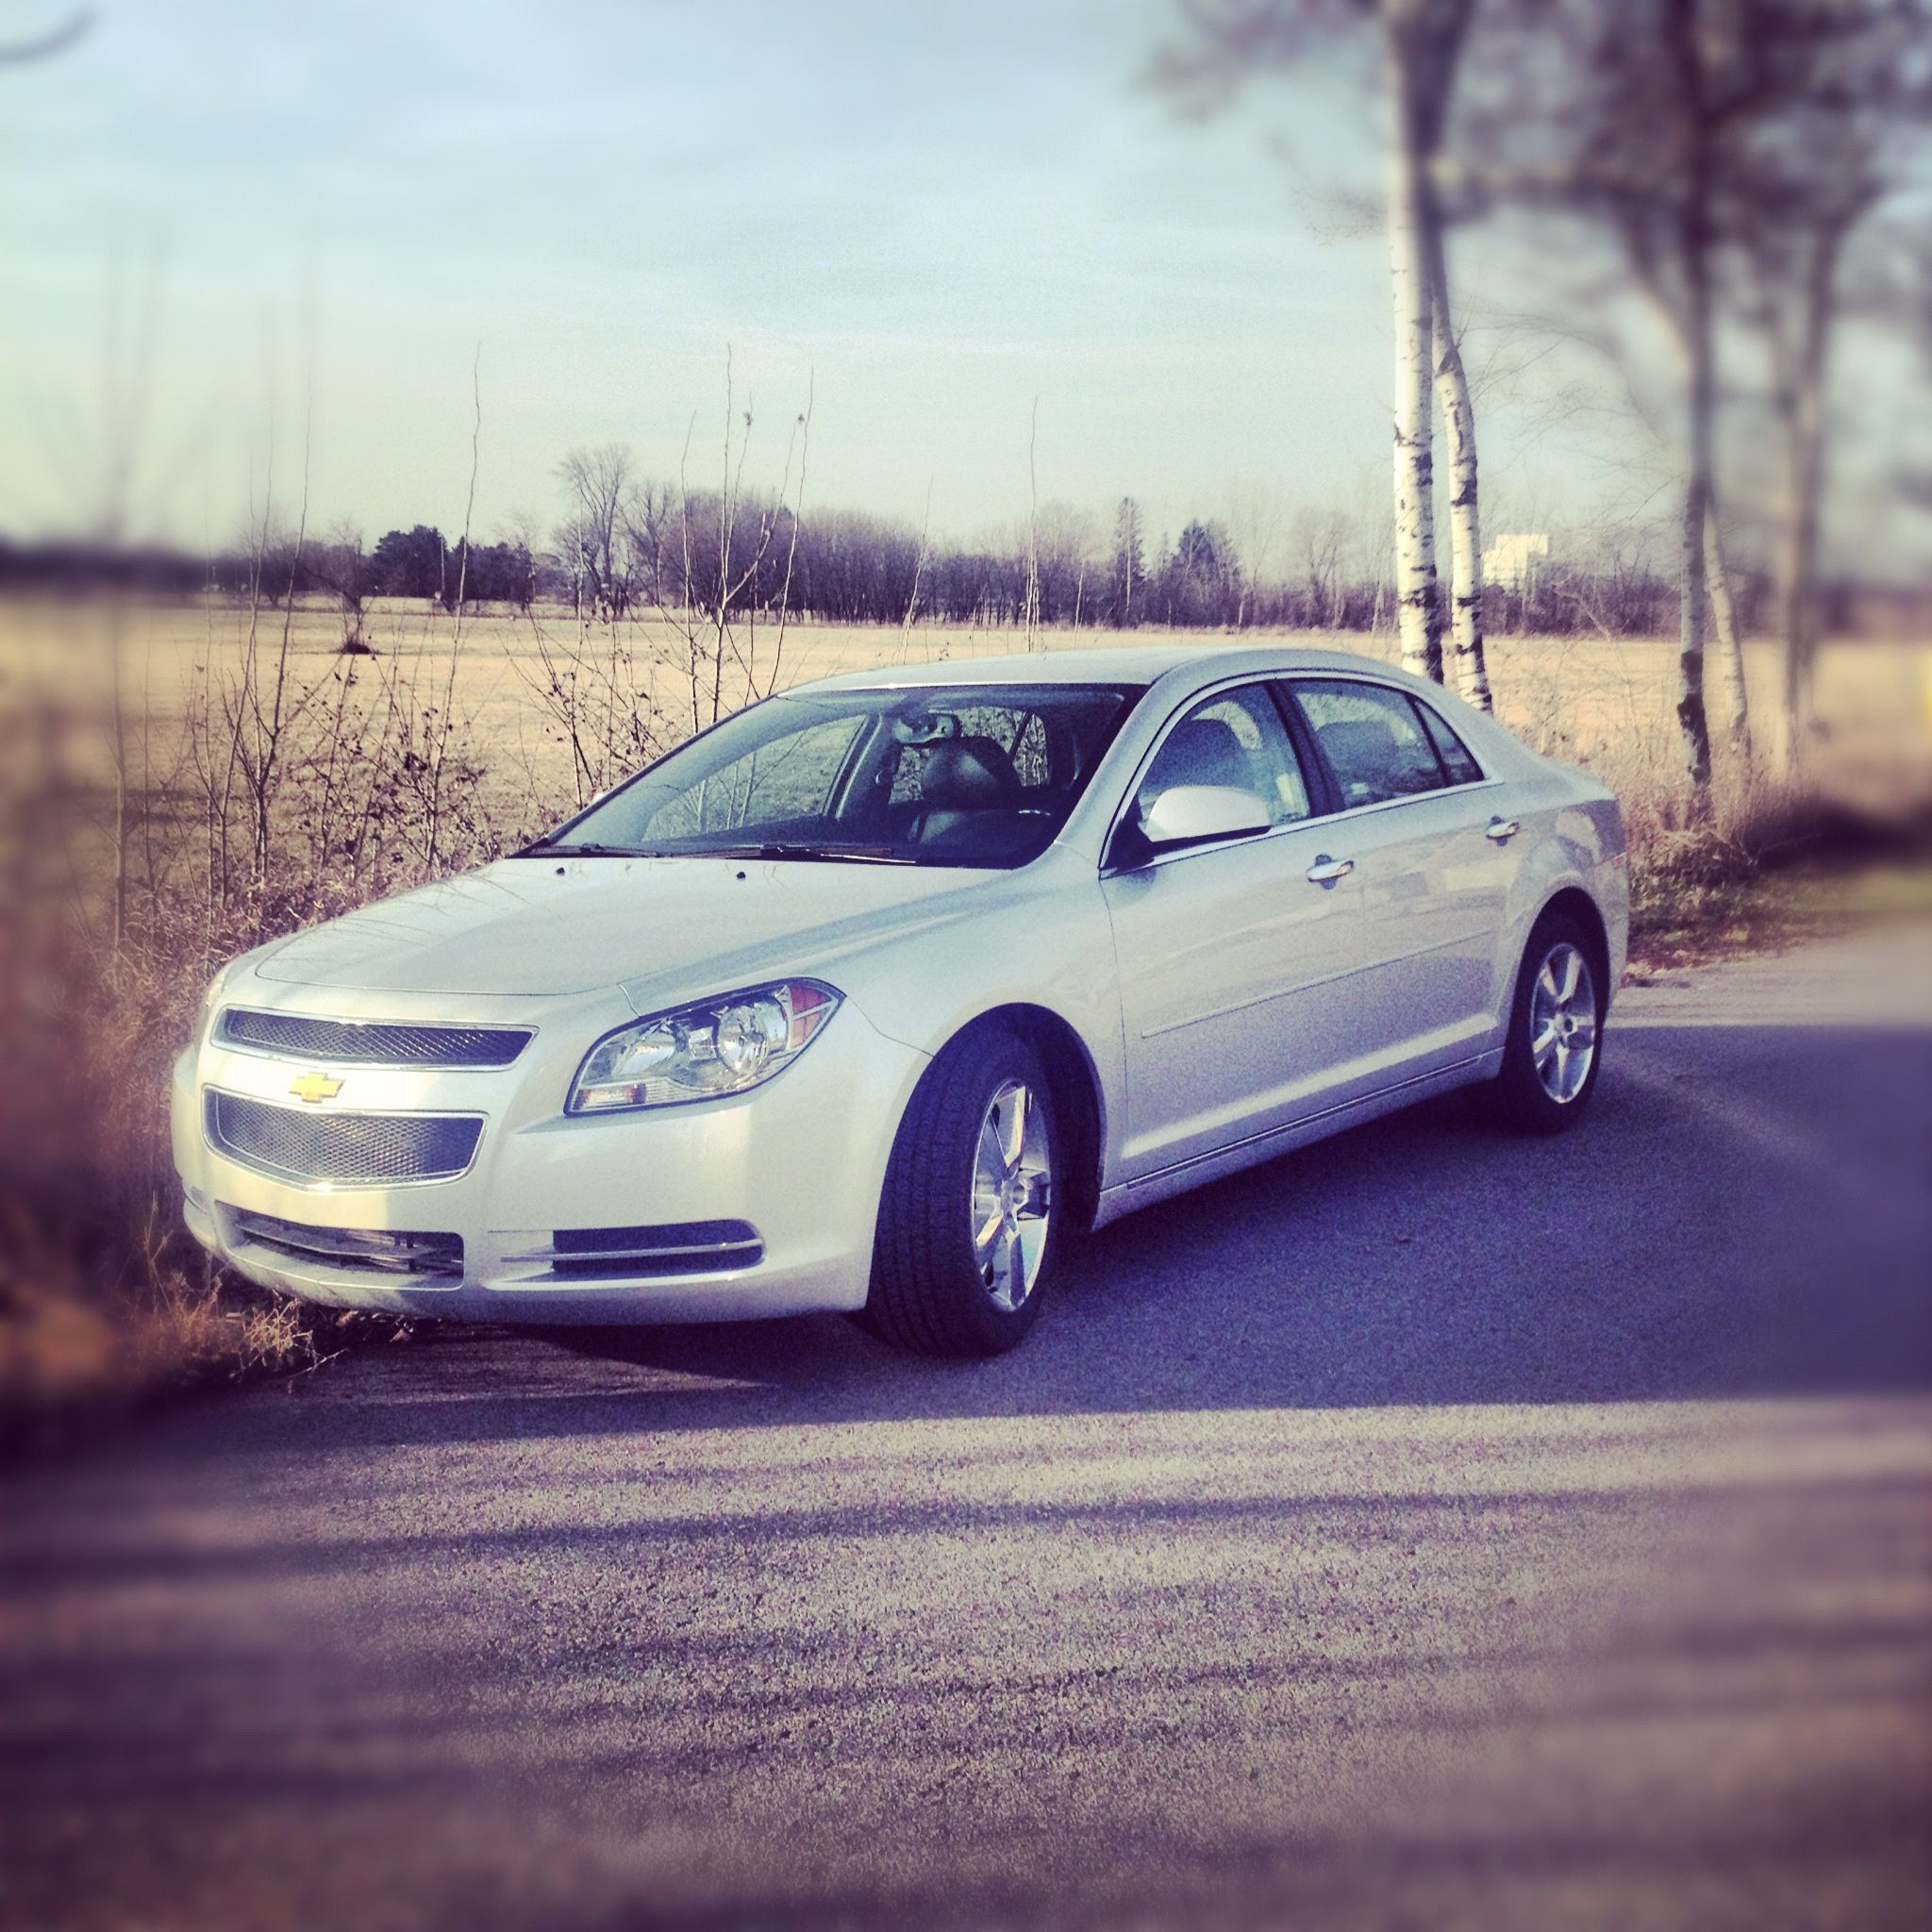 start chevy code up forum ls exhaust rev with amp starter elegant sensor chevrolet awesome malibu location quick tour of